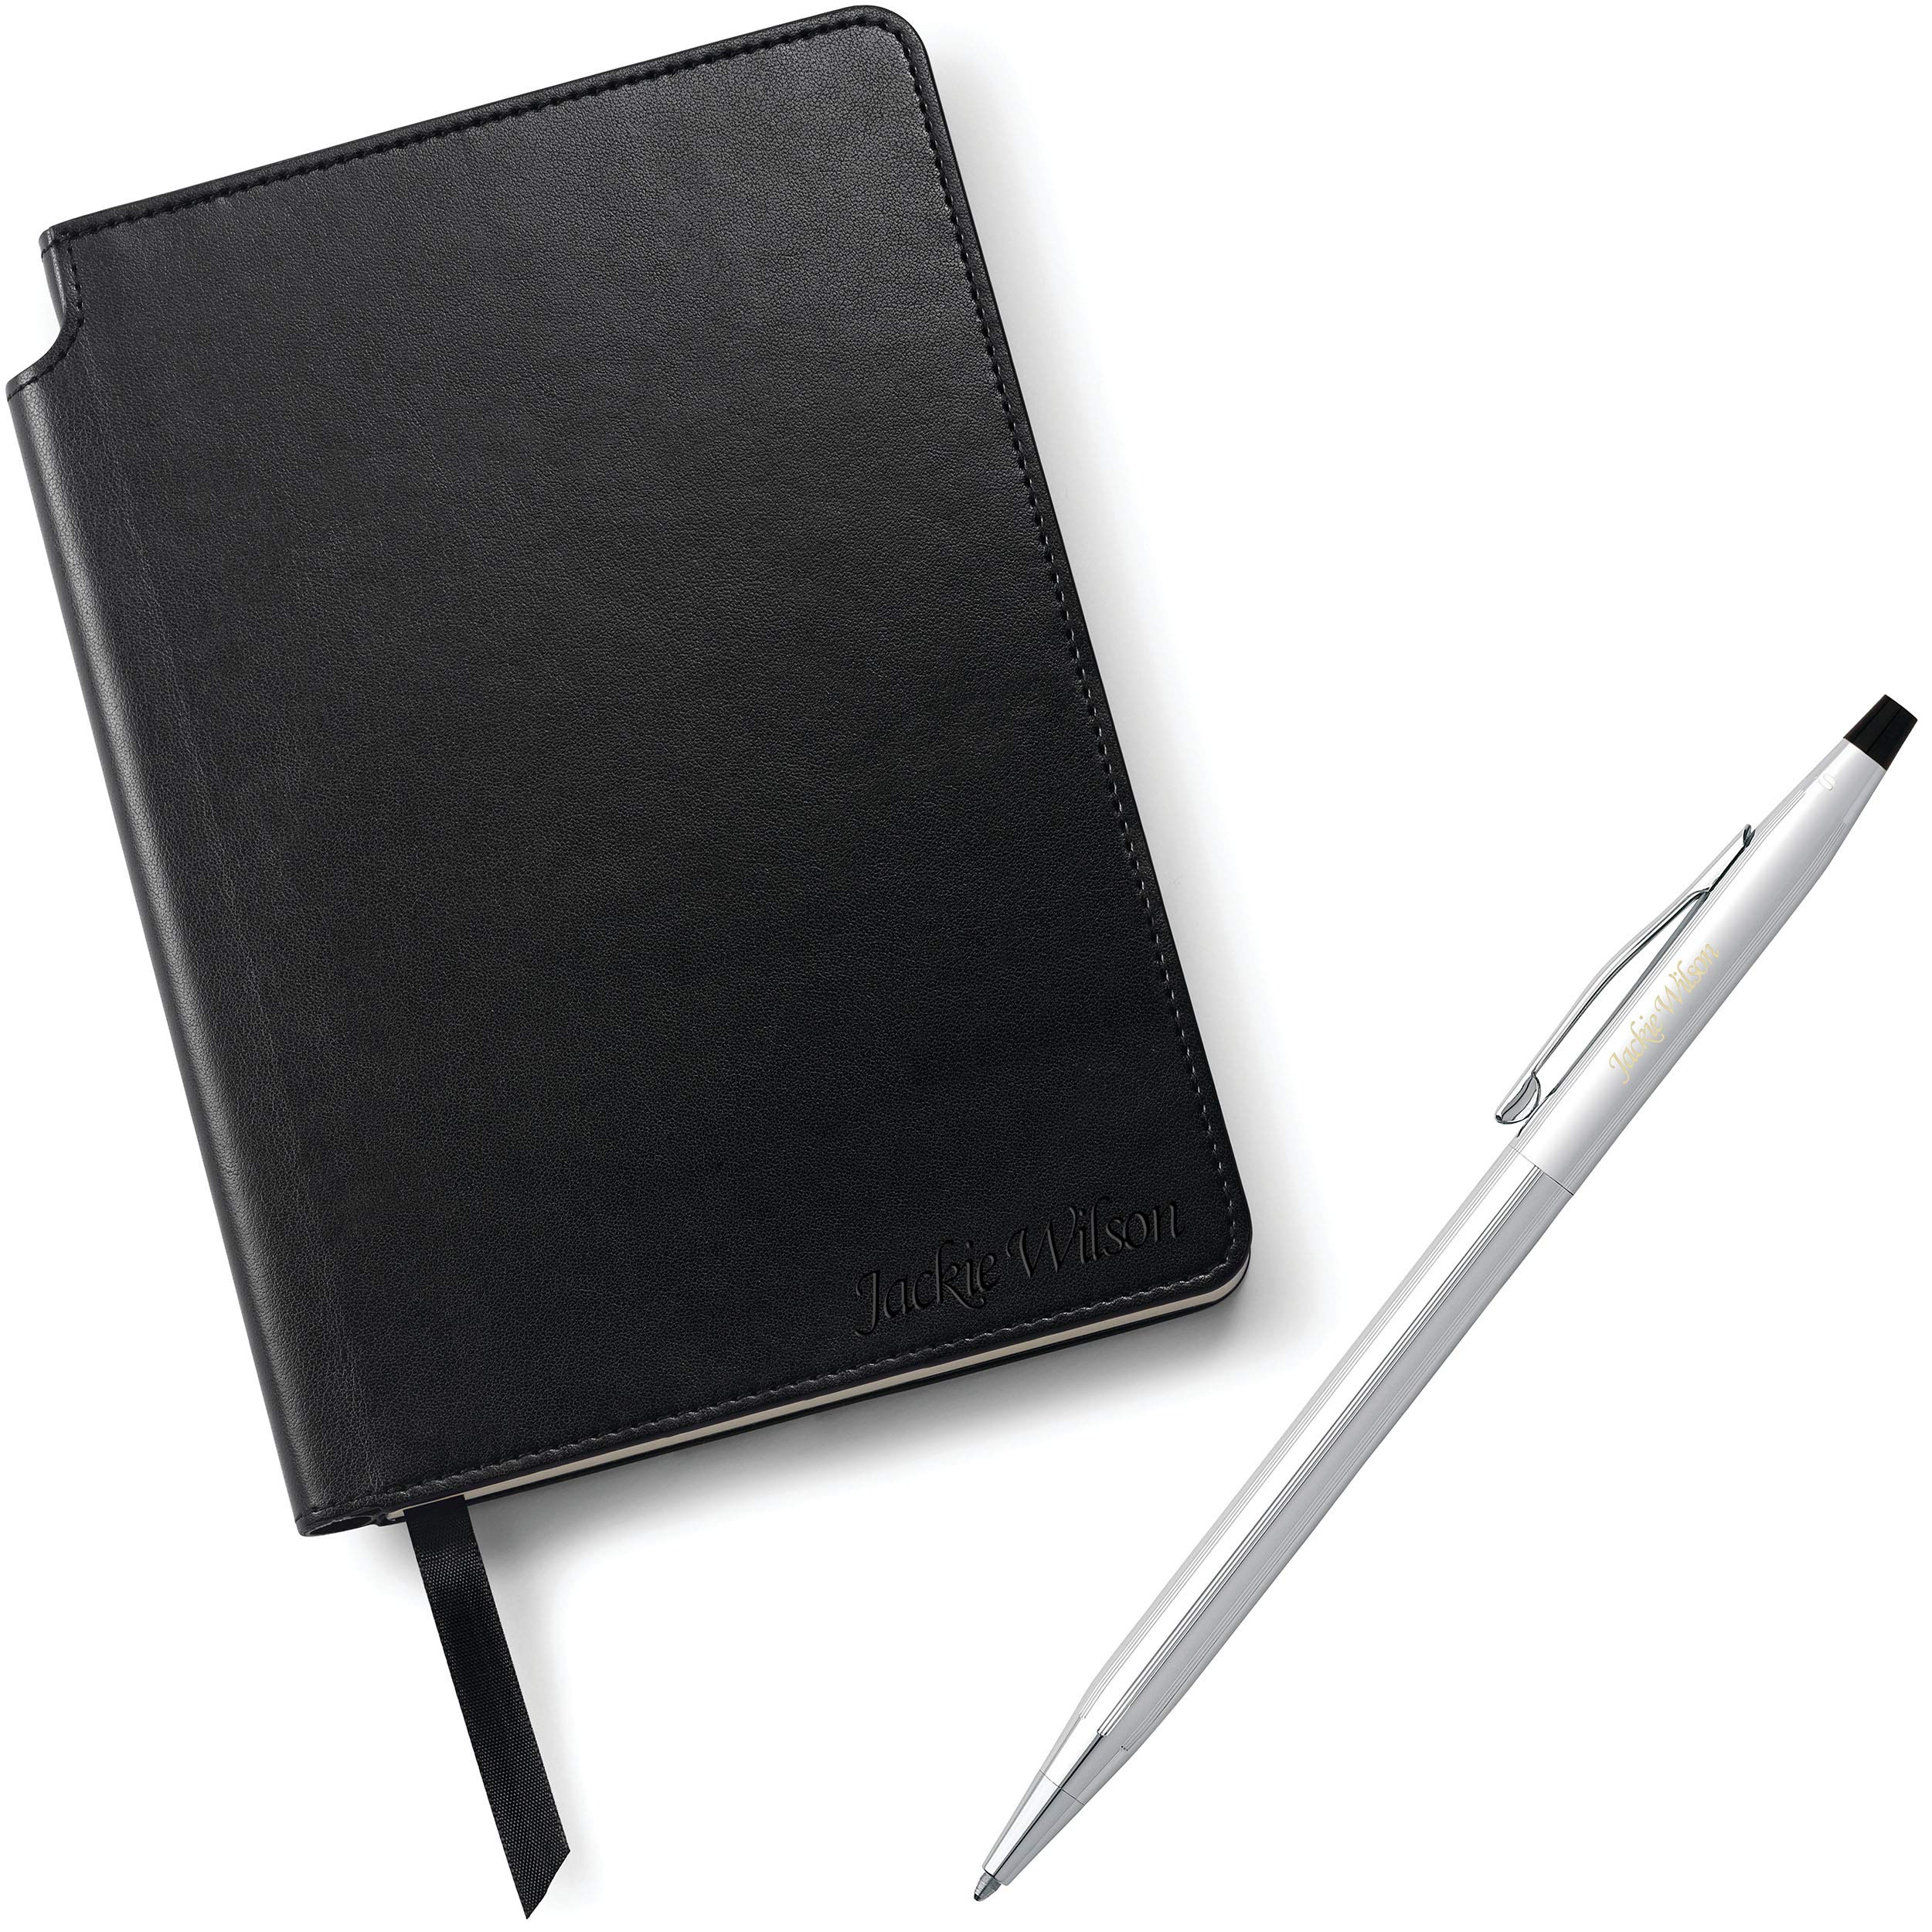 Dayspring Pens | AT Cross Personalized Pen and Journal Gift Set - Classic Century Ballpoint with a Black Journal - Engraved. Comes in gift box. by Dayspring Pens (Image #2)